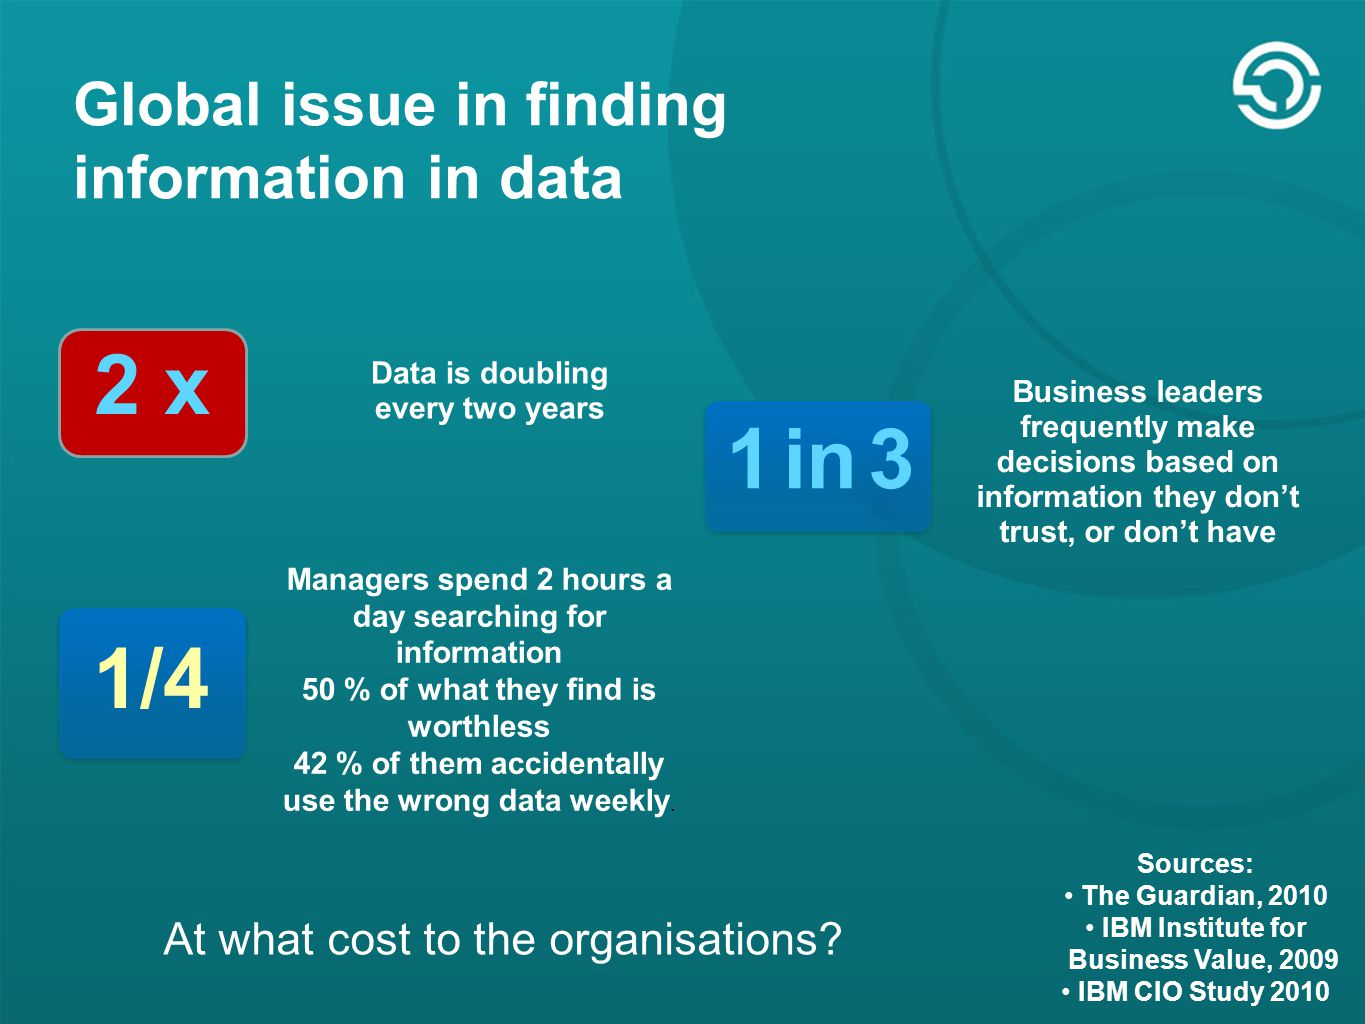 Global issue in finding information in data 2 x Data is doubling every two years Business leaders frequently make decisions based on information they don't trust, or don't have 1 in 3 Managers spend 2 hours a day searching for information 50 % of what they find is worthless 42 % of them accidentally use the wrong data weekly.